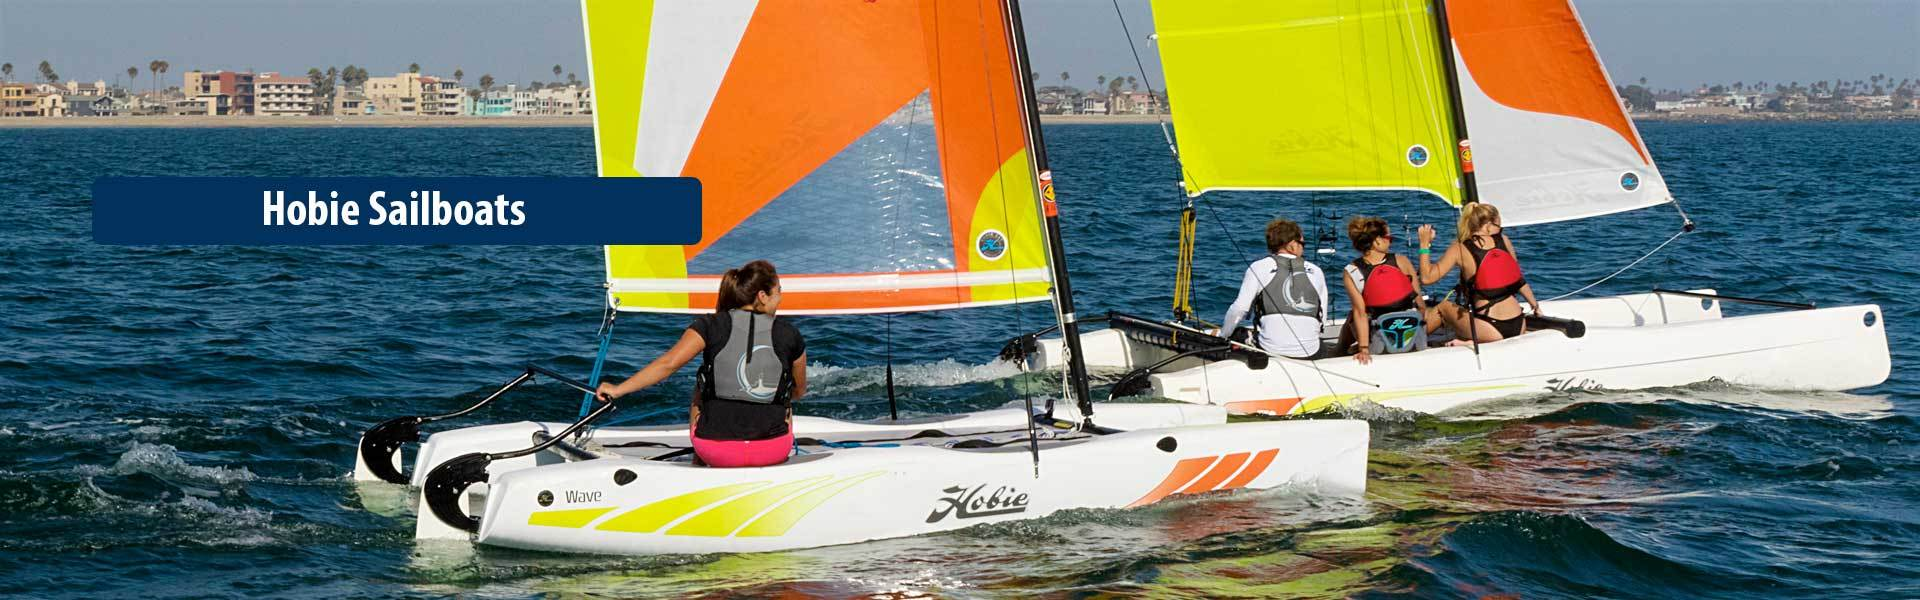 Hobie Sailboats